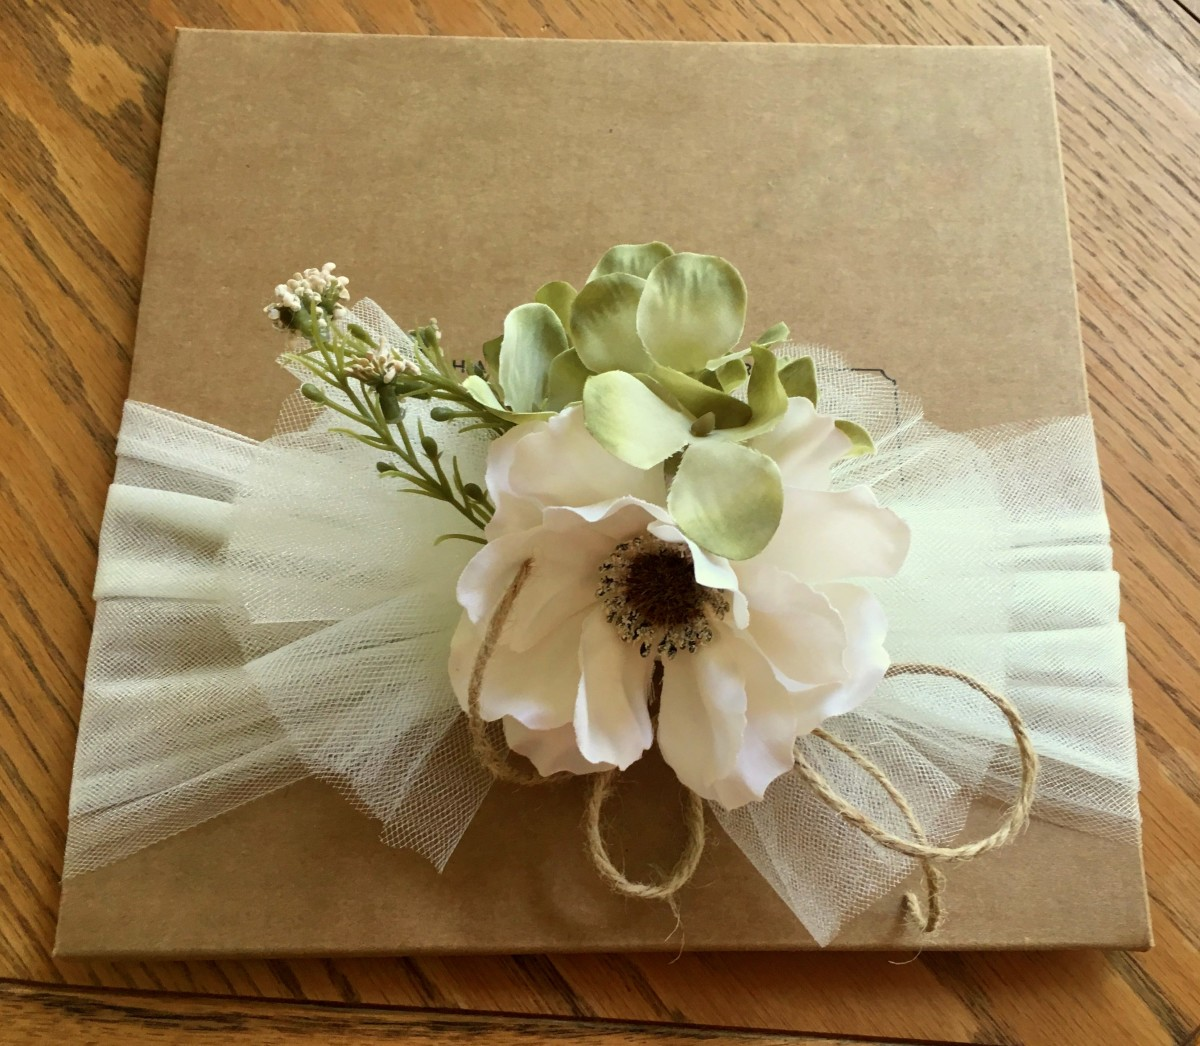 A Practical Gift Solution: How to Make a CD or DVD of Photos